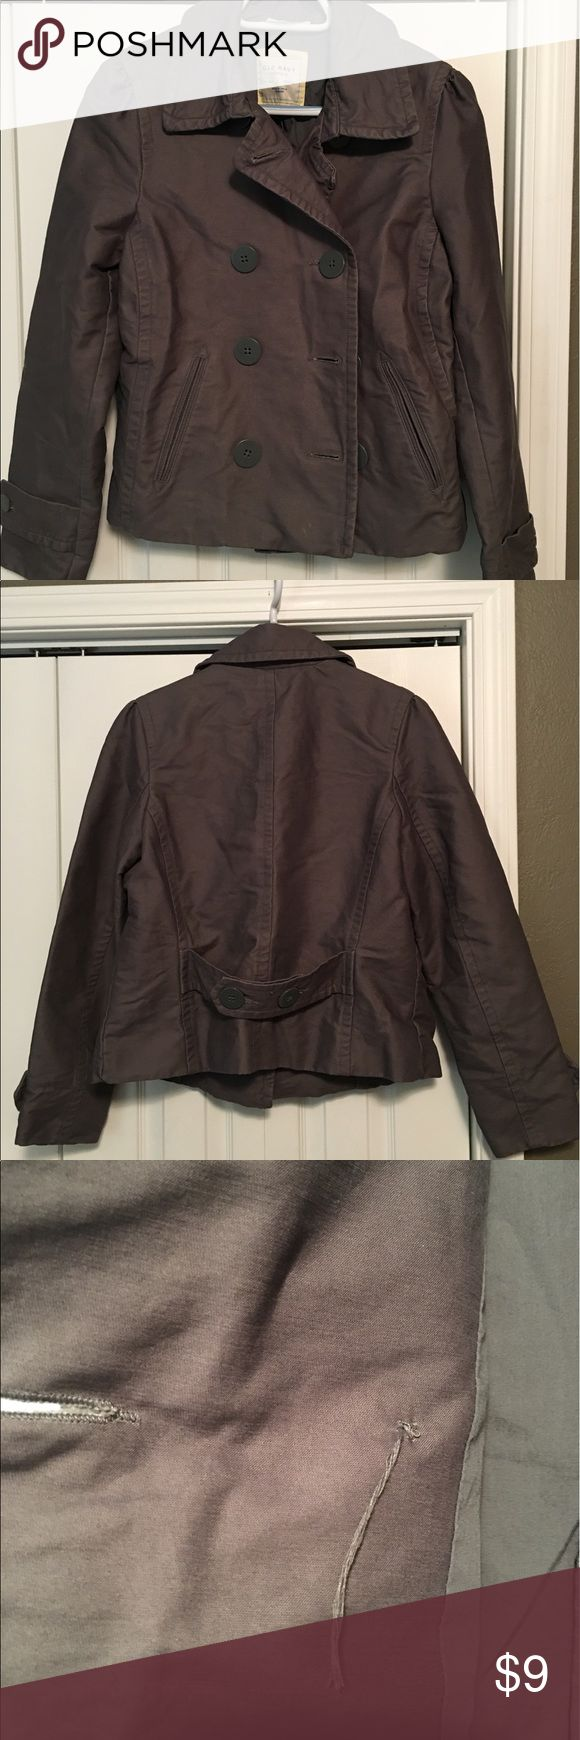 Old Navy Pea Coat Old Navy dark grey pea coat. Fit is similar to a jean jacket. Hits at high hip. Very Cute. Great condition other than missing the anchor button on the inside of jacket as shown in picture. Old Navy Jackets & Coats Pea Coats